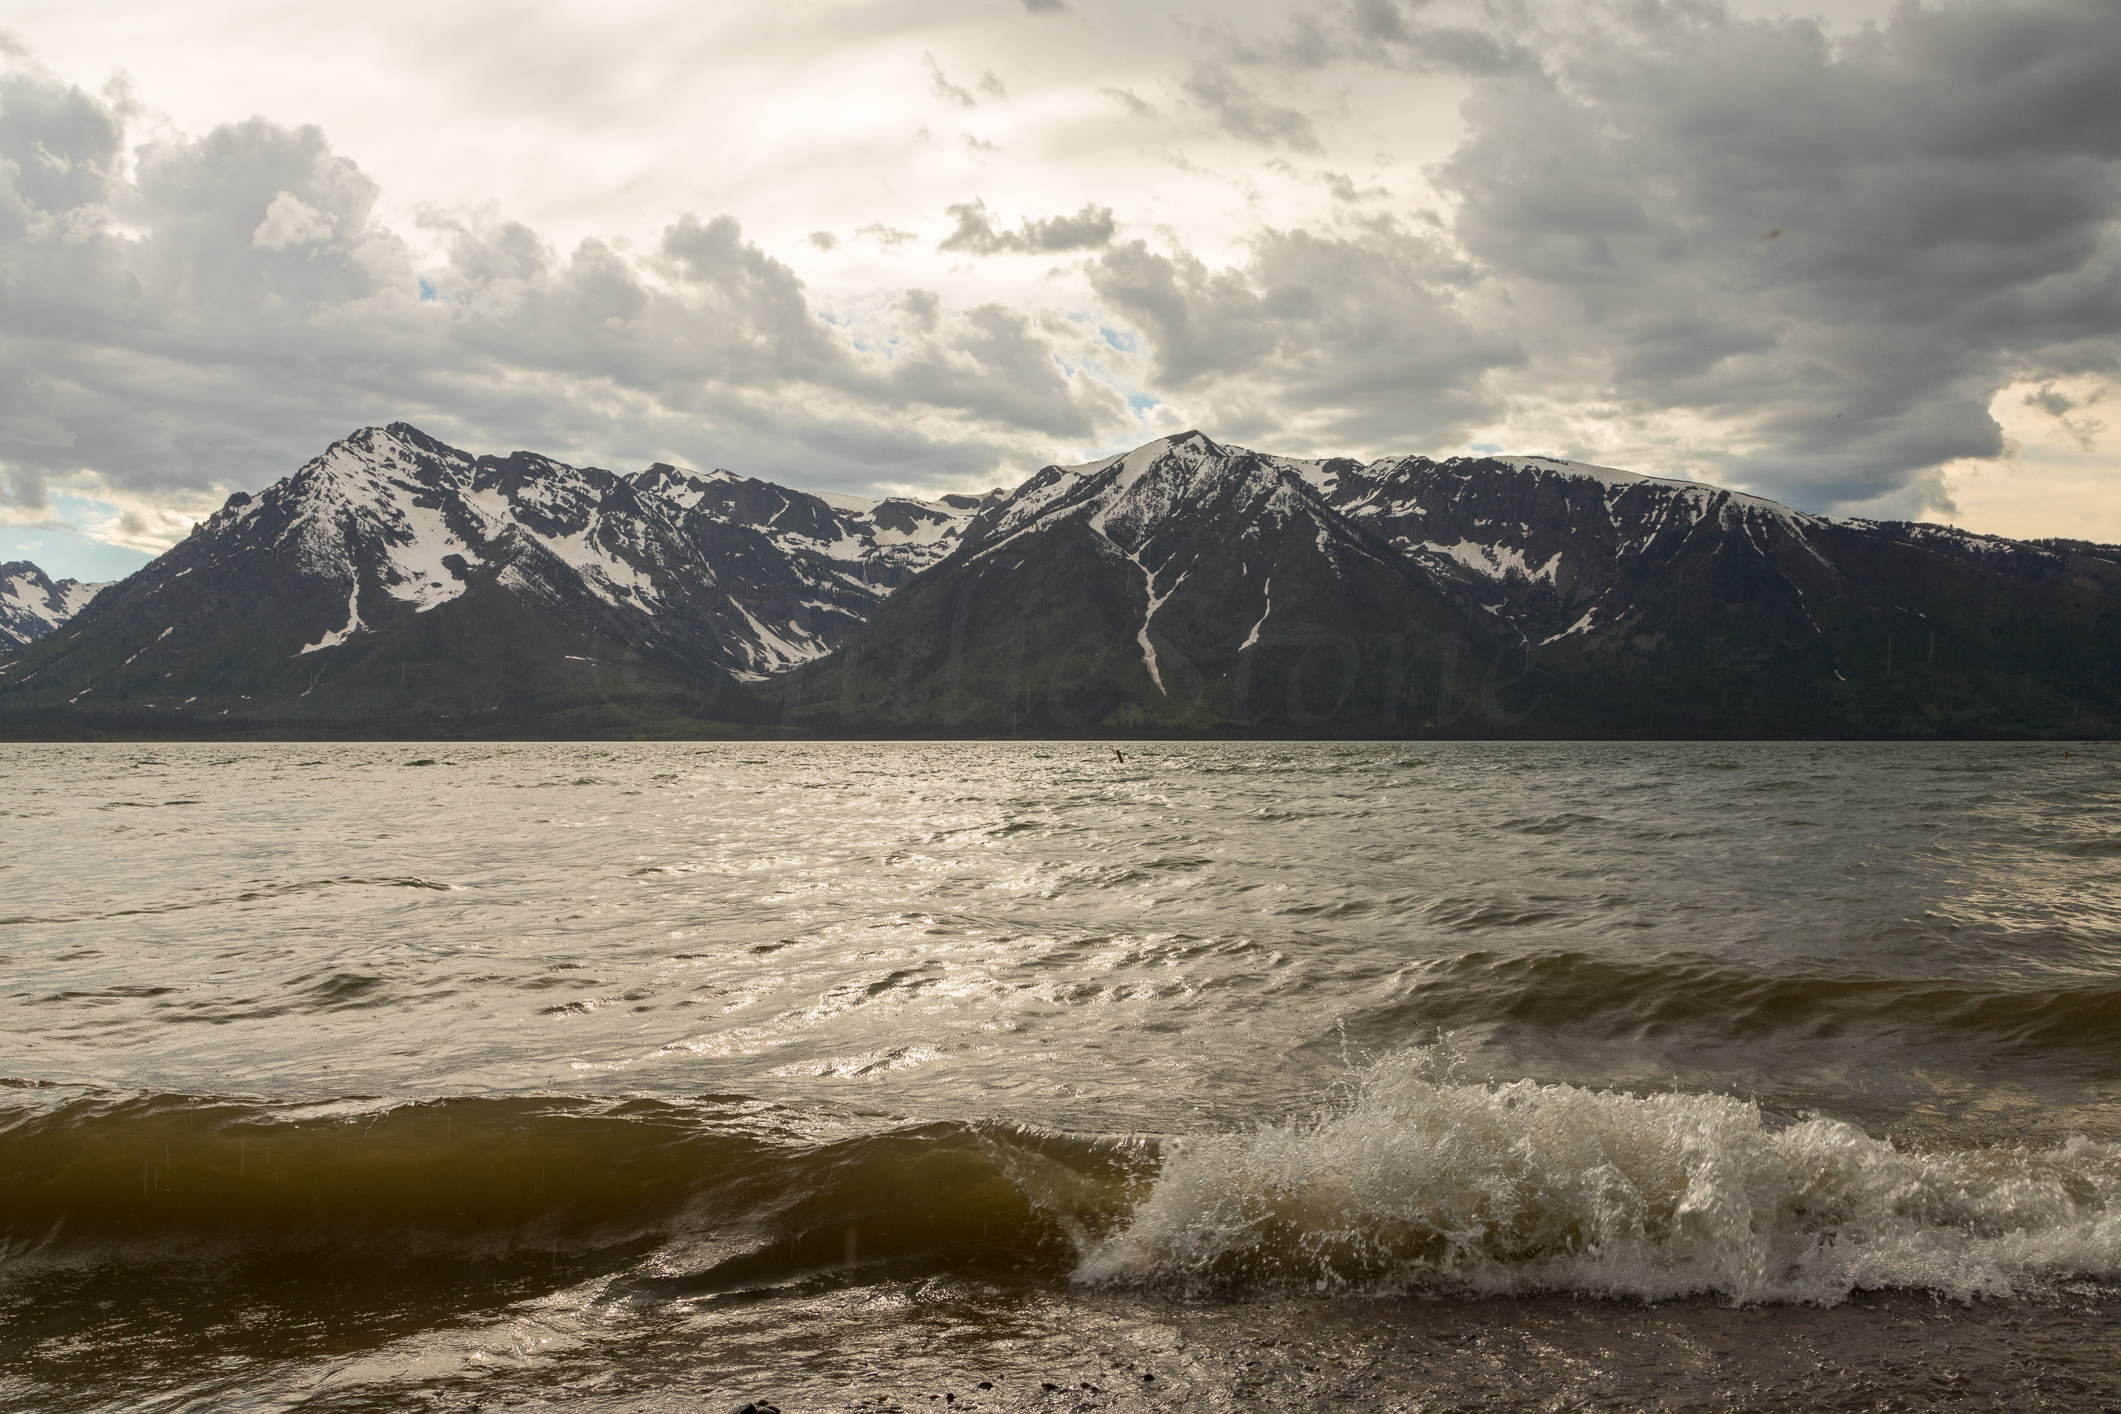 Colter Bay, Image # 3652